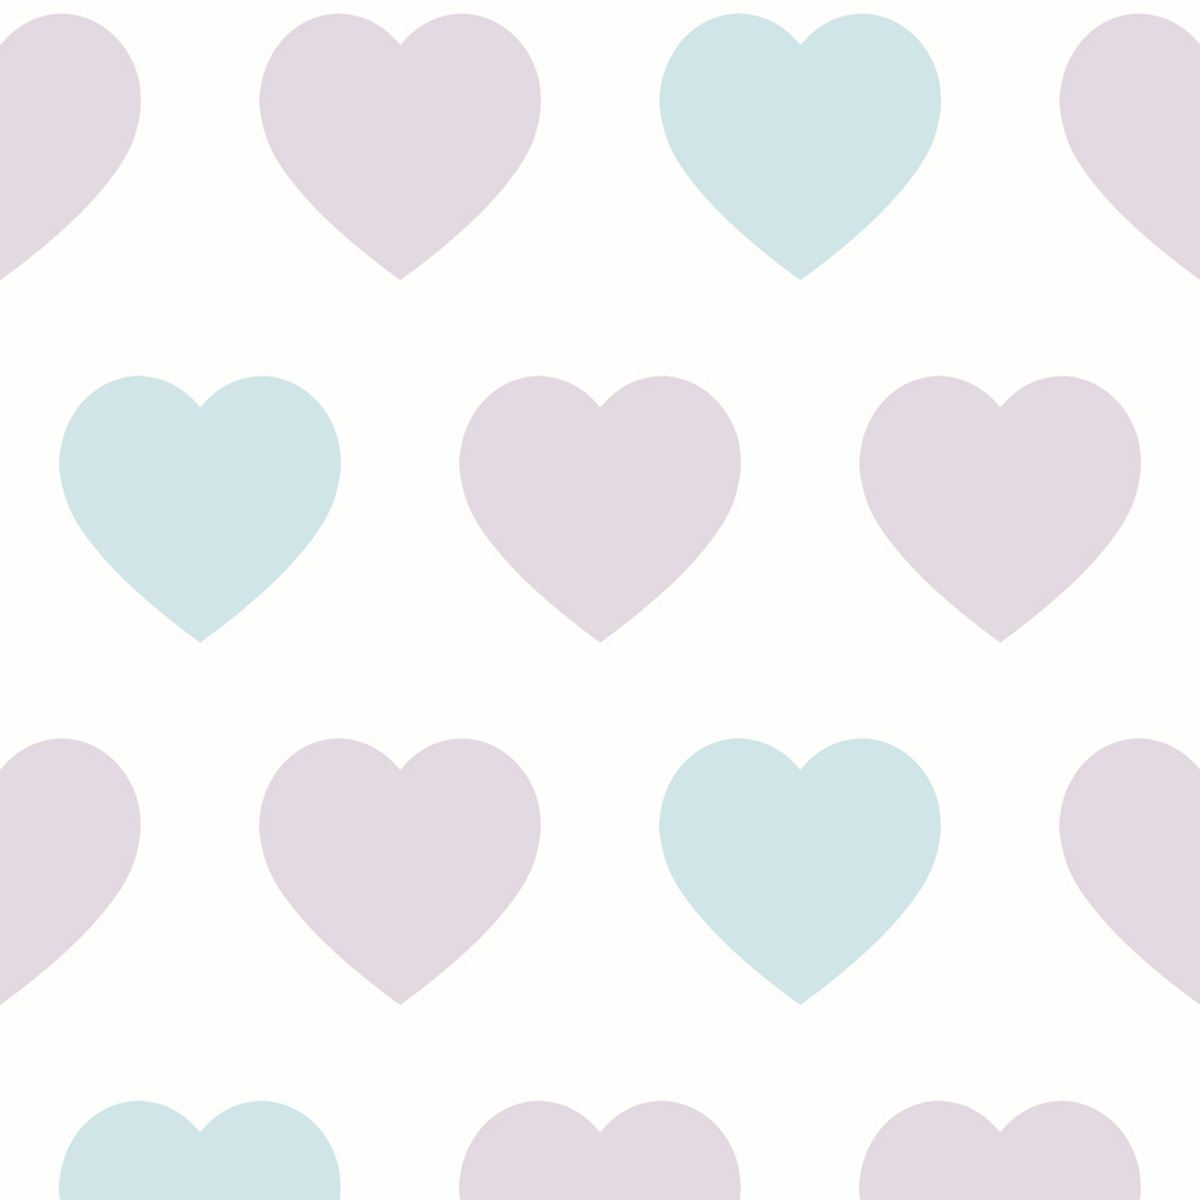 POLKA DOTS STARS HEARTS Amp ROSEBUDS PATTERNED WALLPAPER